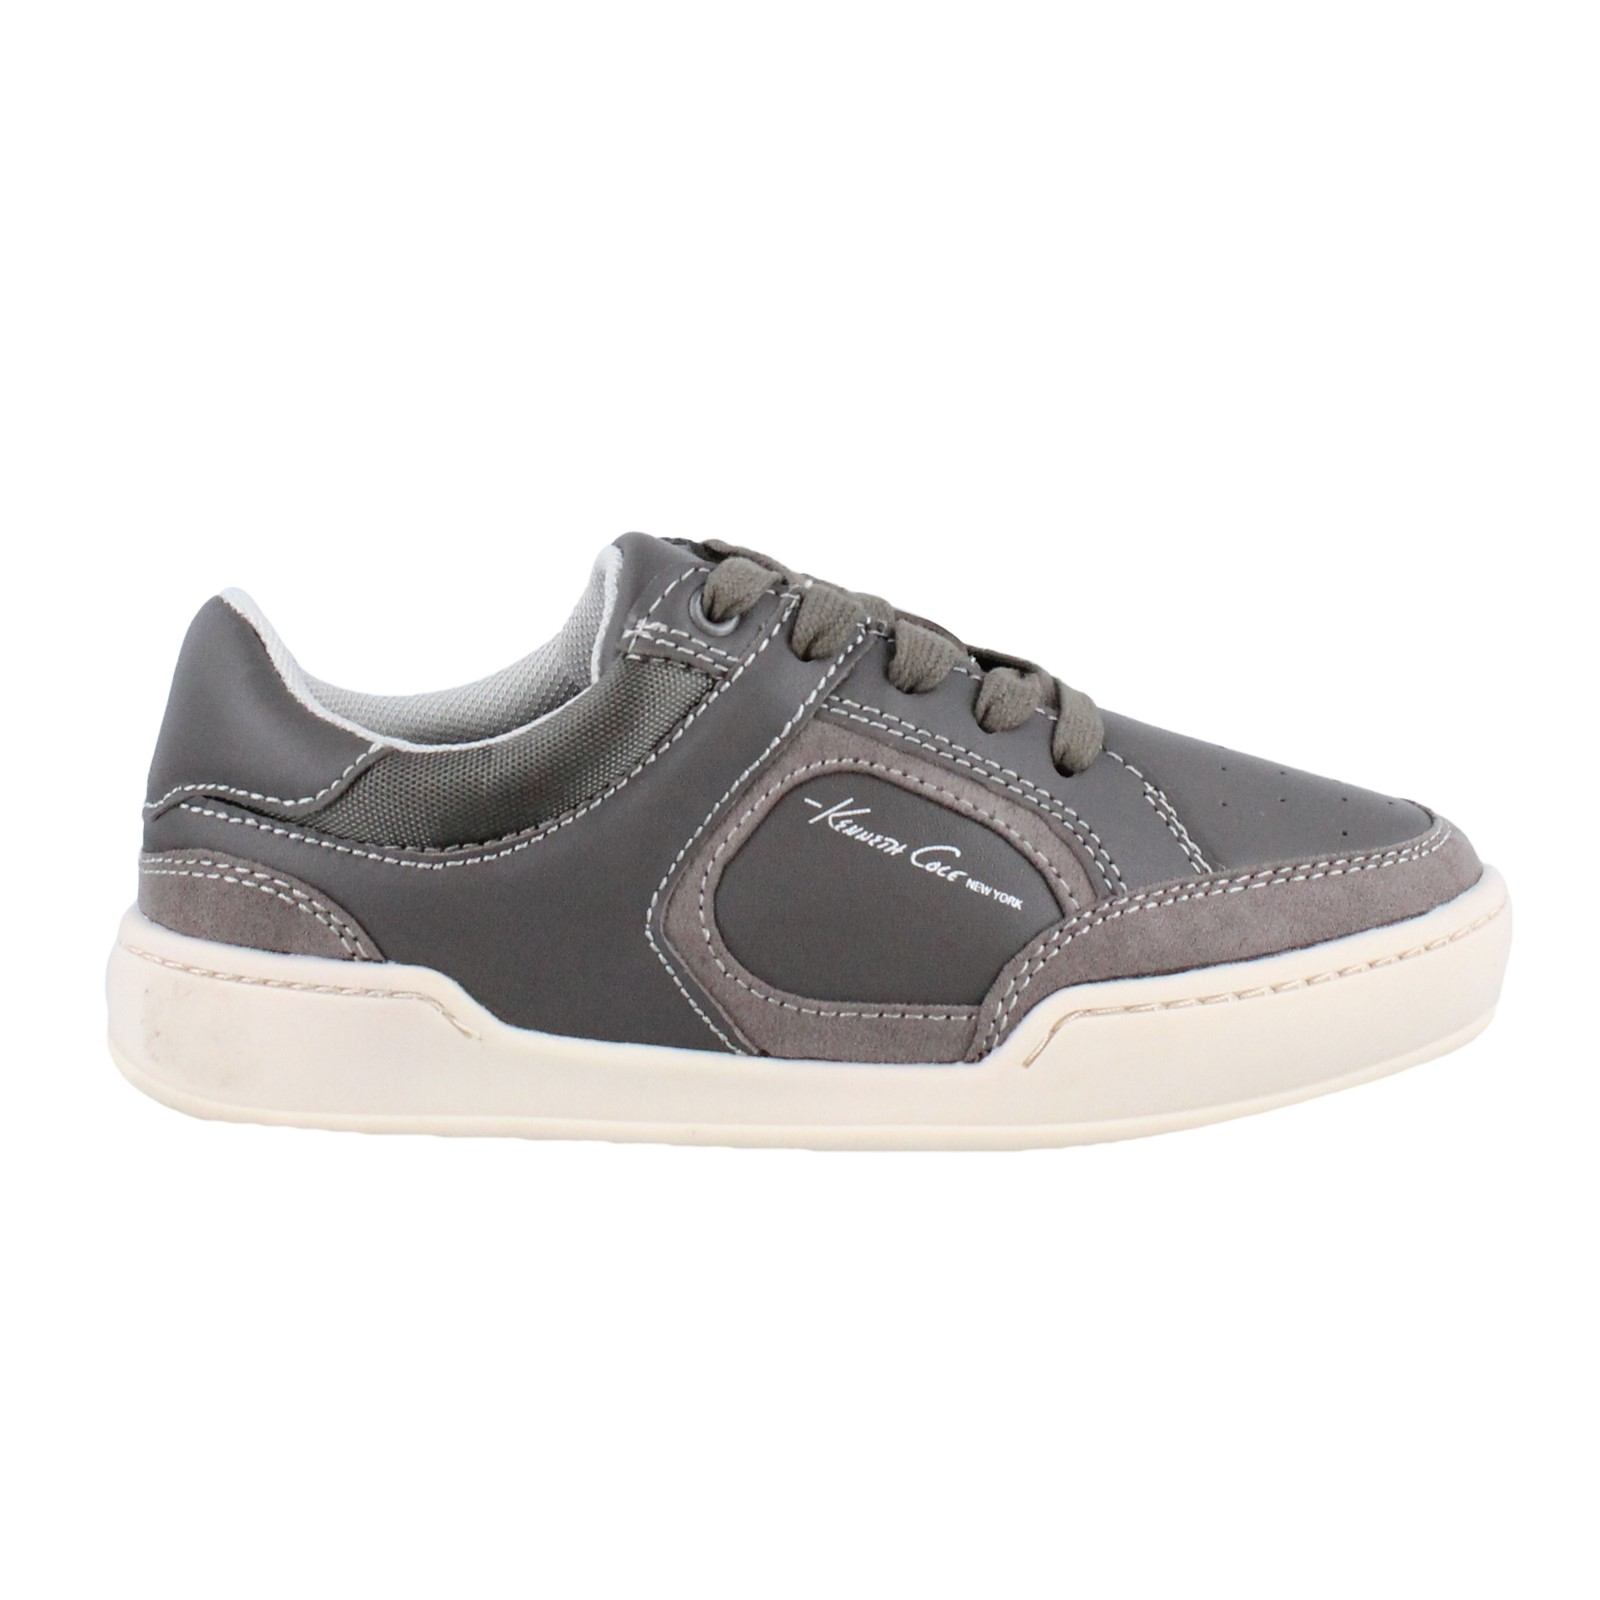 Boy's Kenneth Cole, Turf Dreams Lace up Shoe